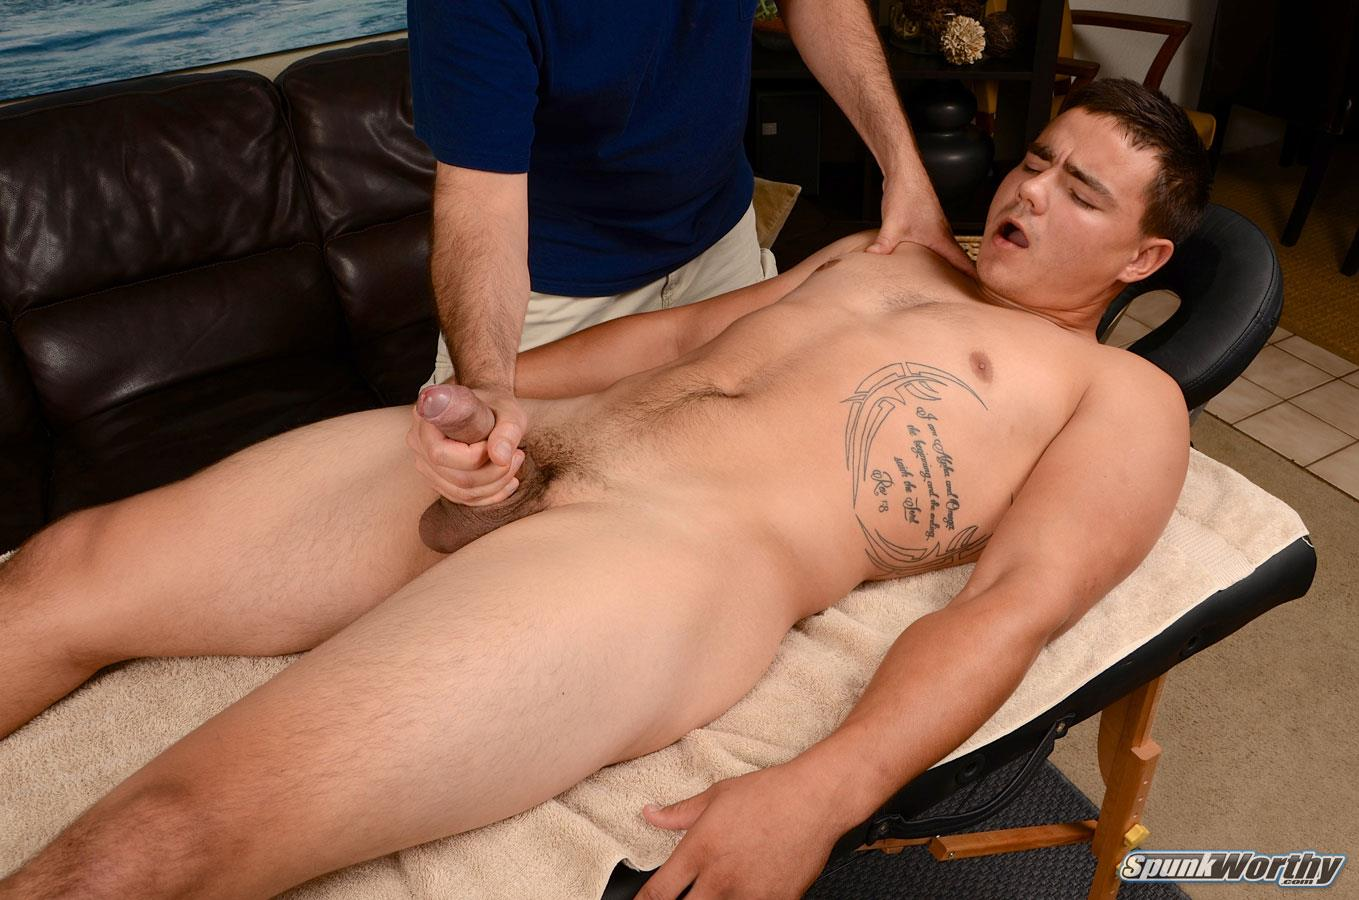 gay muscle happy ending massage videos Westminster, Colorado